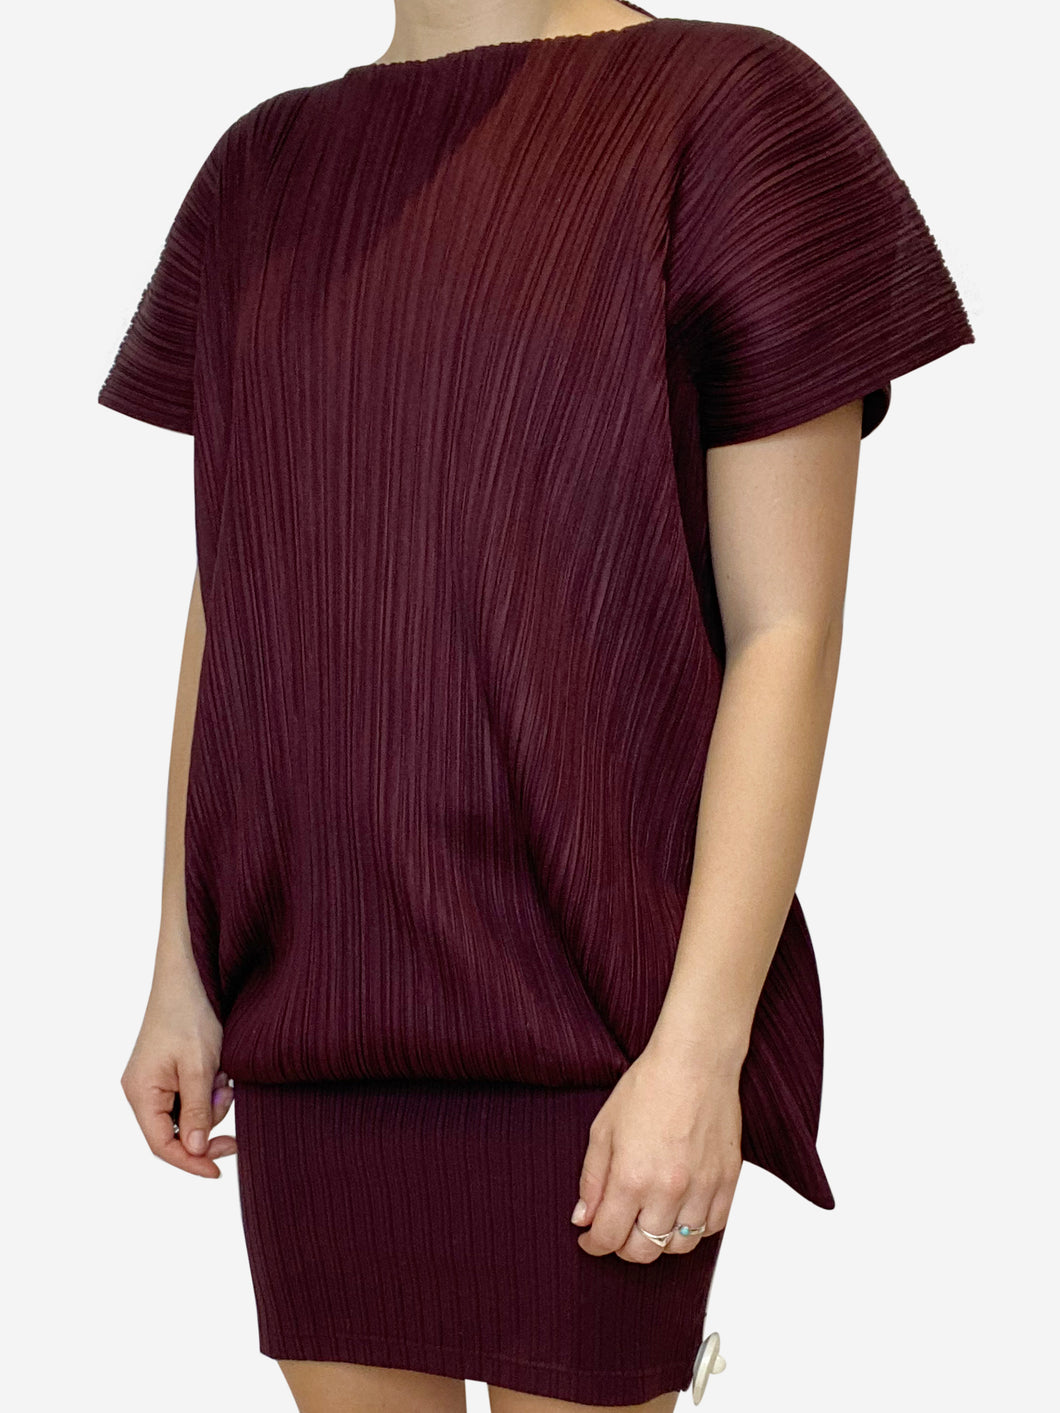 Burgundy pleated tunic - size M